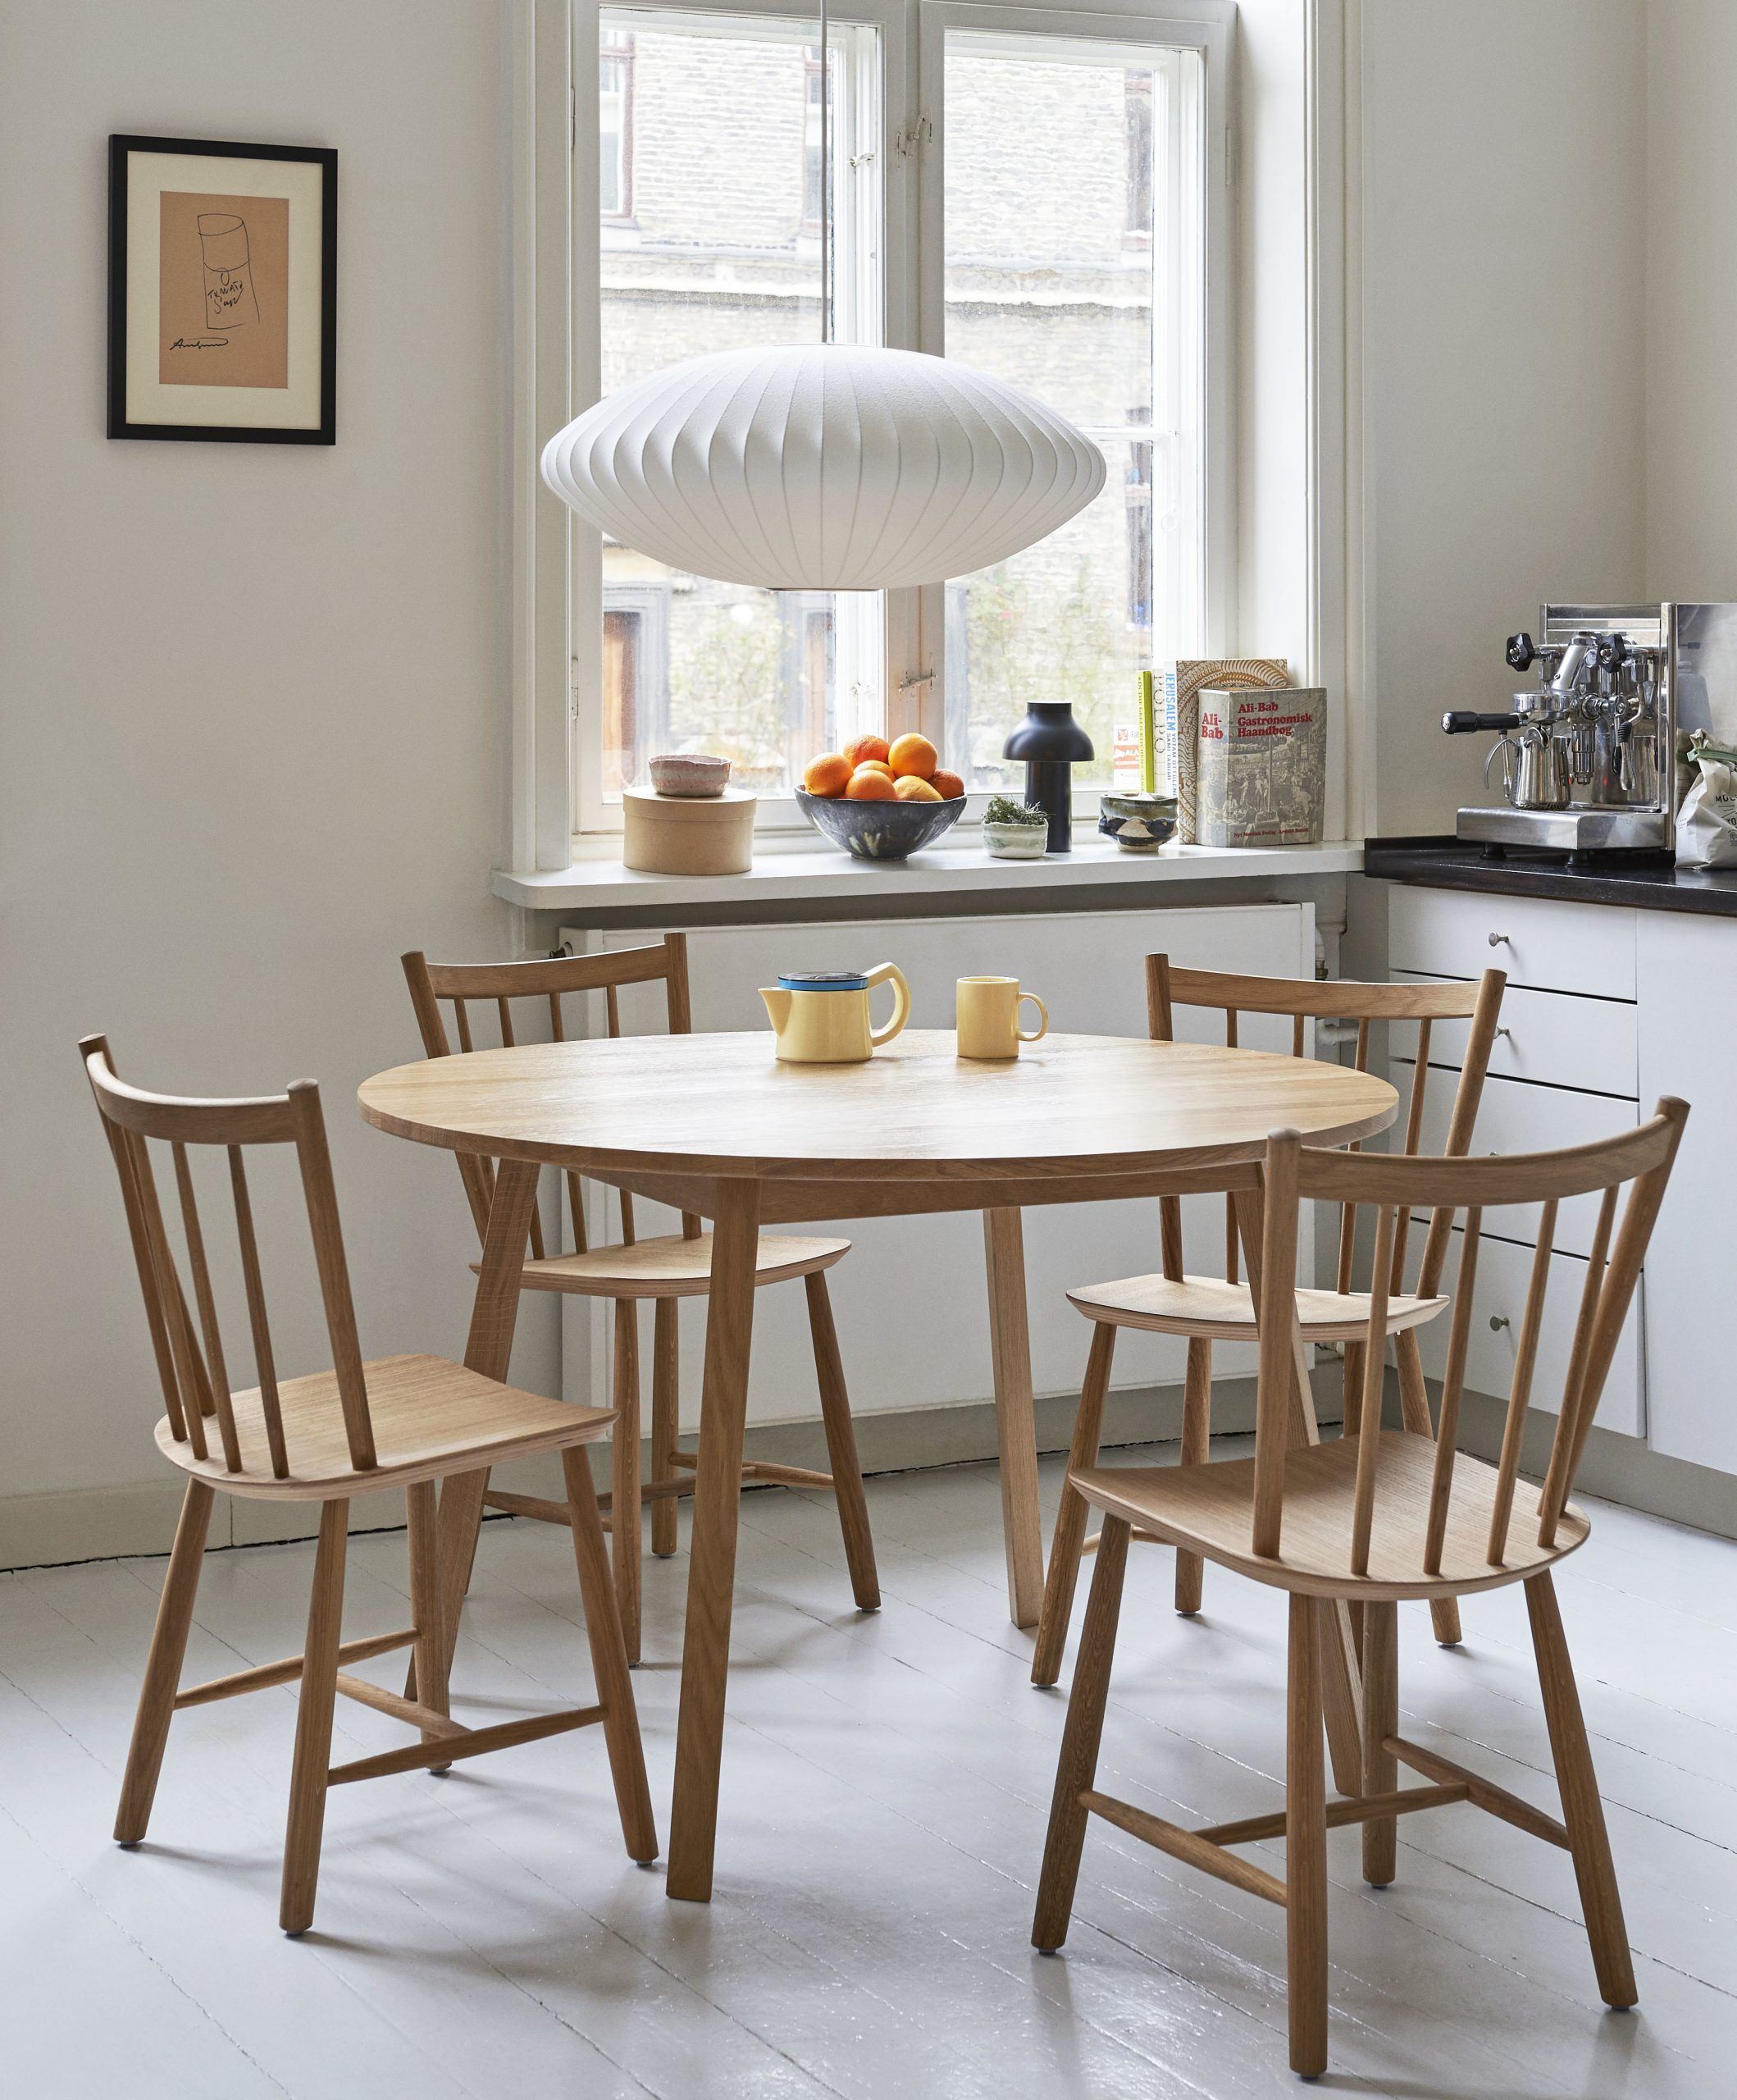 Crema, Wooden dining table, Kitchen living, Nelson Saucer, Bubble Pendant